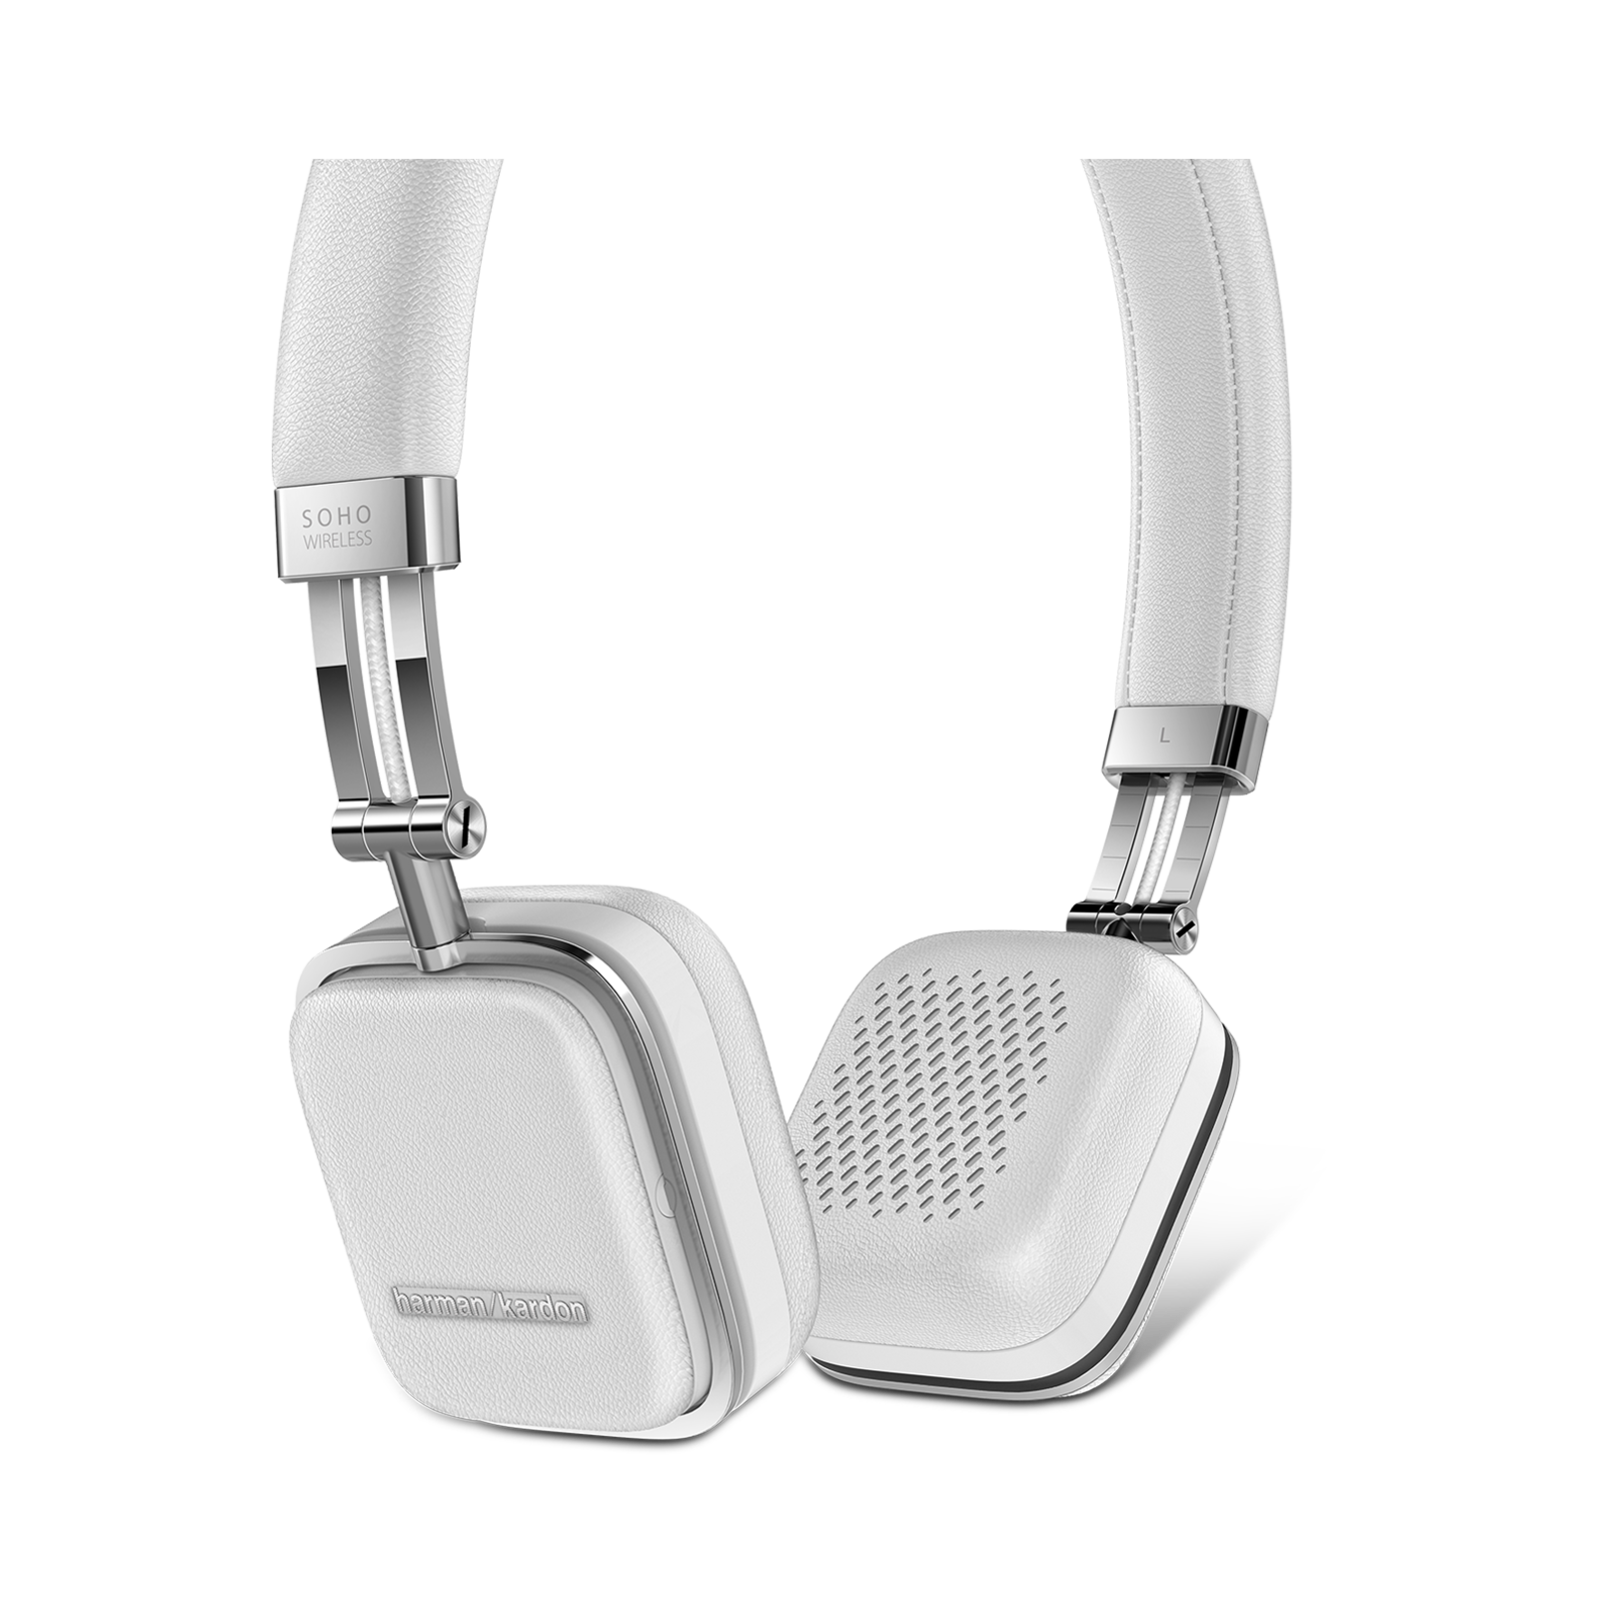 Soho Wireless - White - Premium, on-ear headset with simplified Bluetooth® connectivity. - Detailshot 1